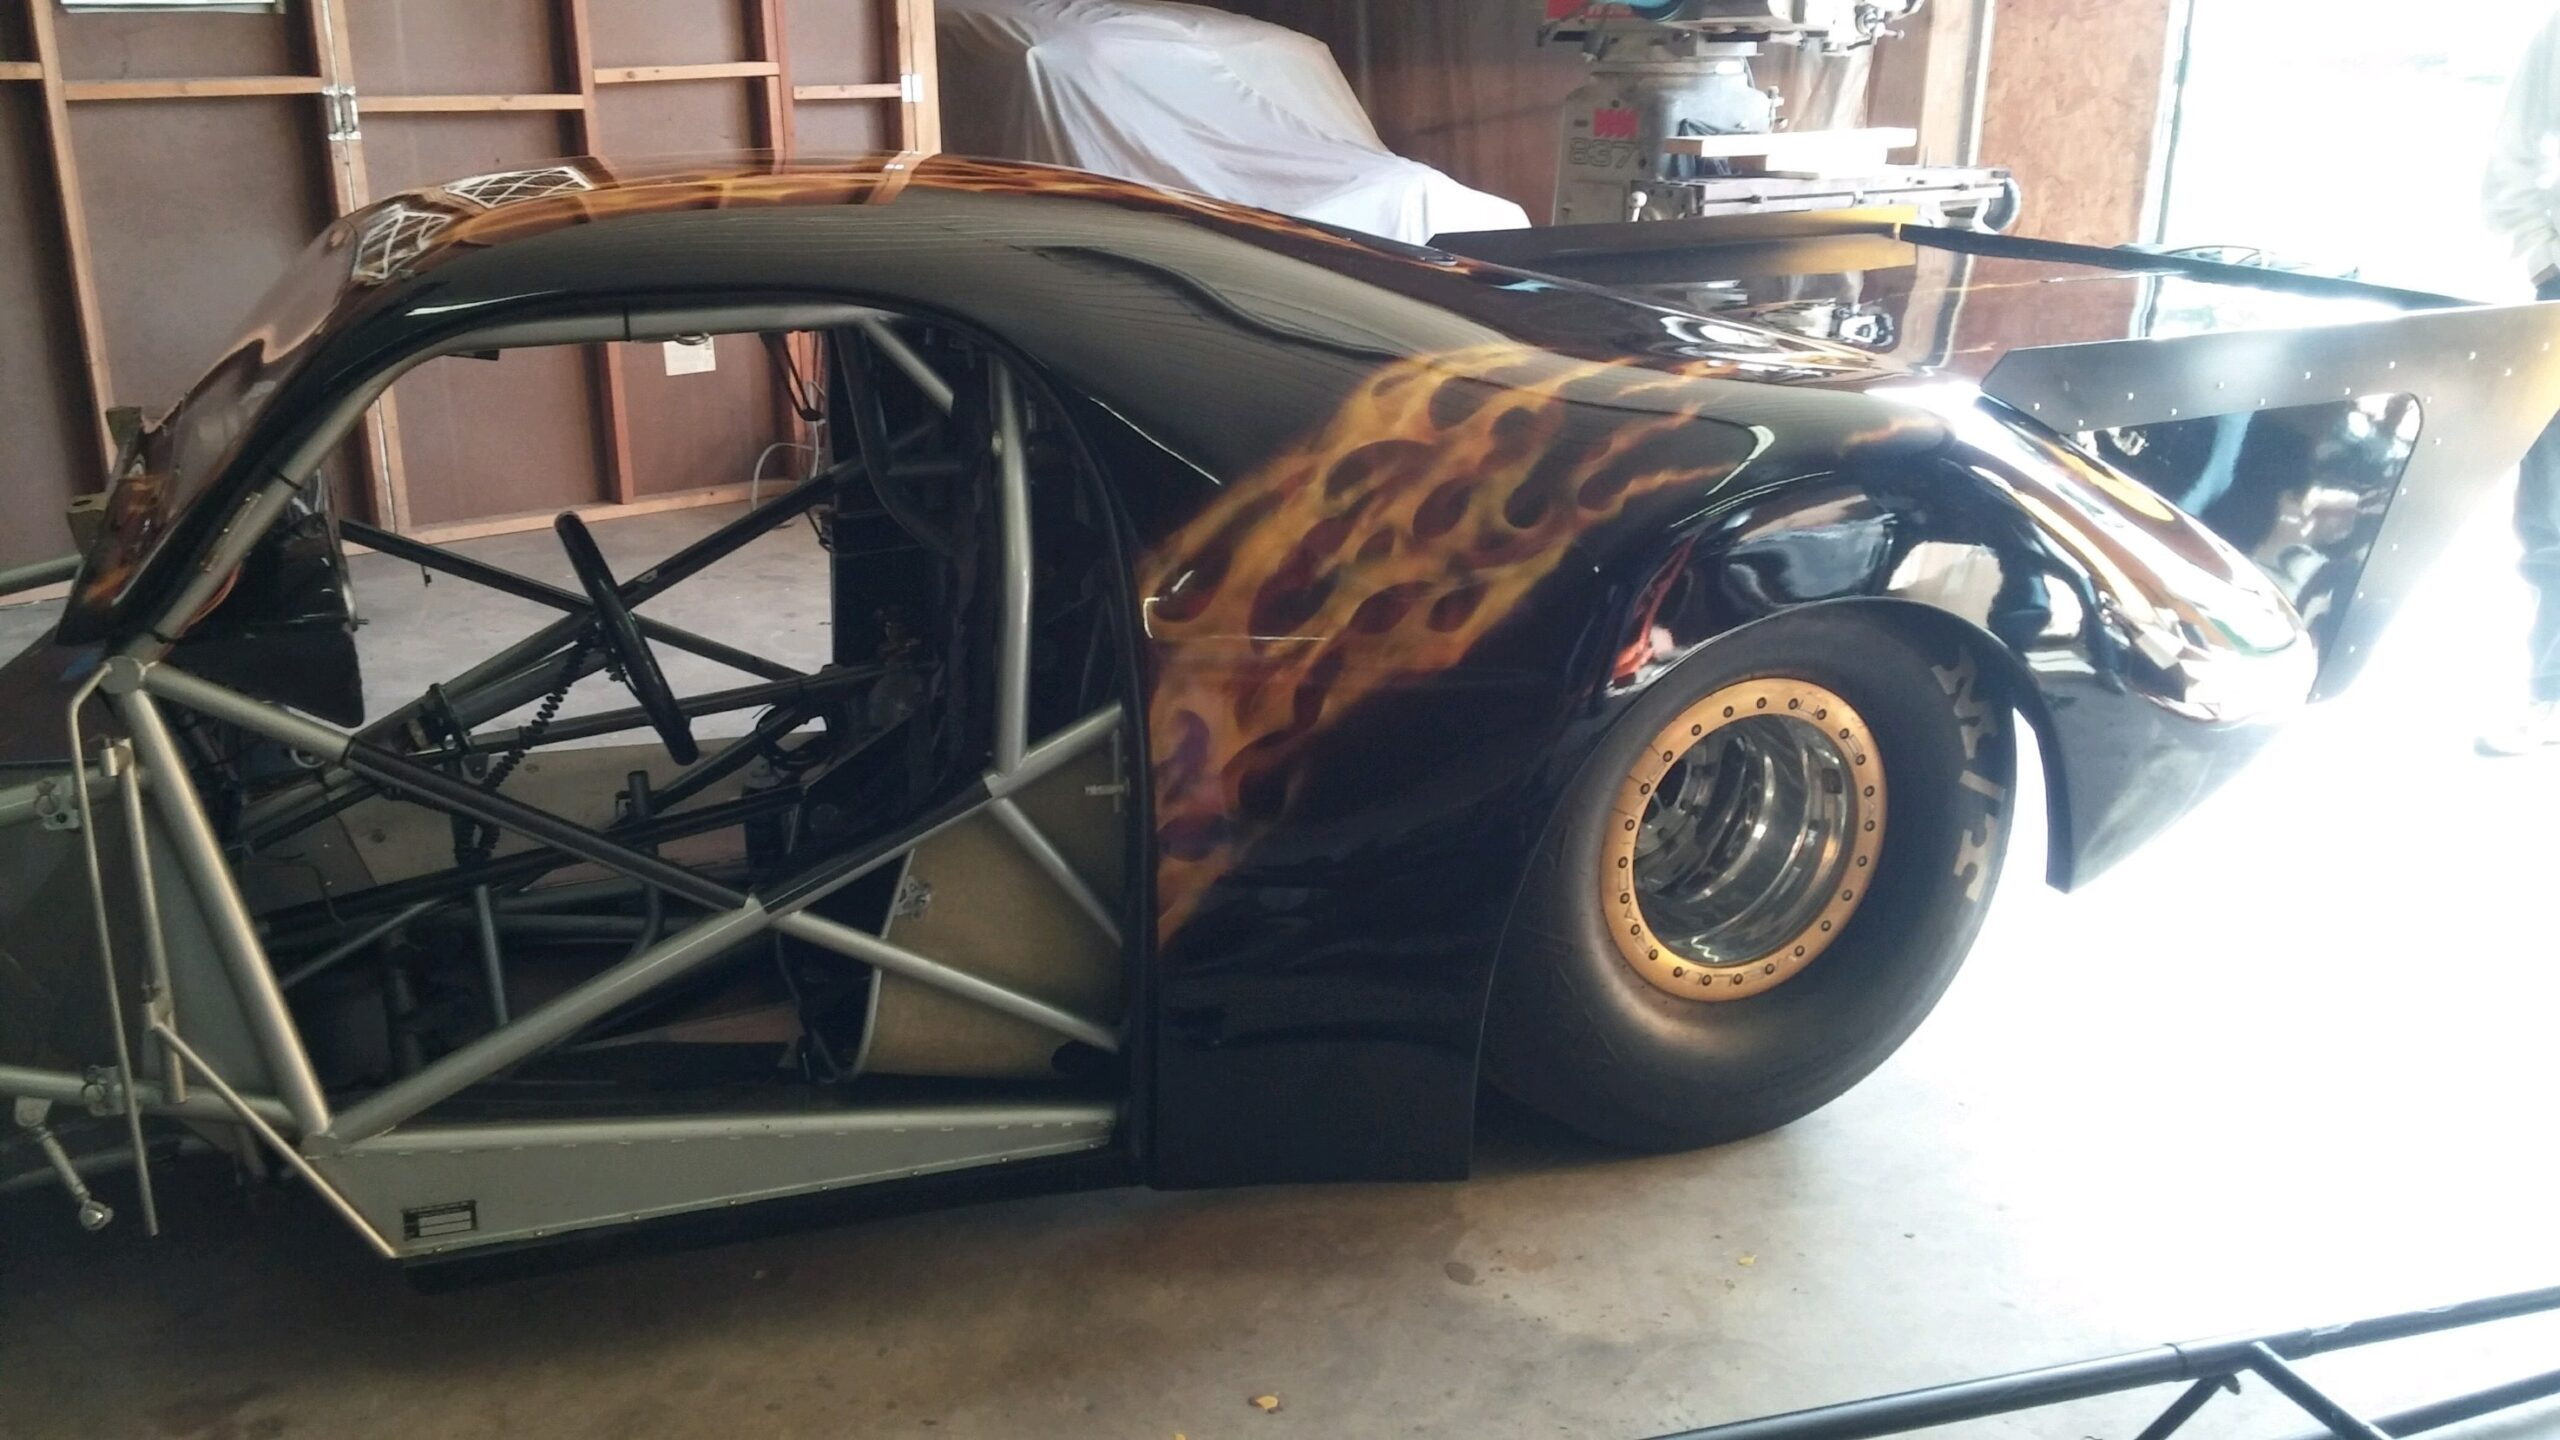 I bought it on RacingJunk: 1941 Willys Pro Mod